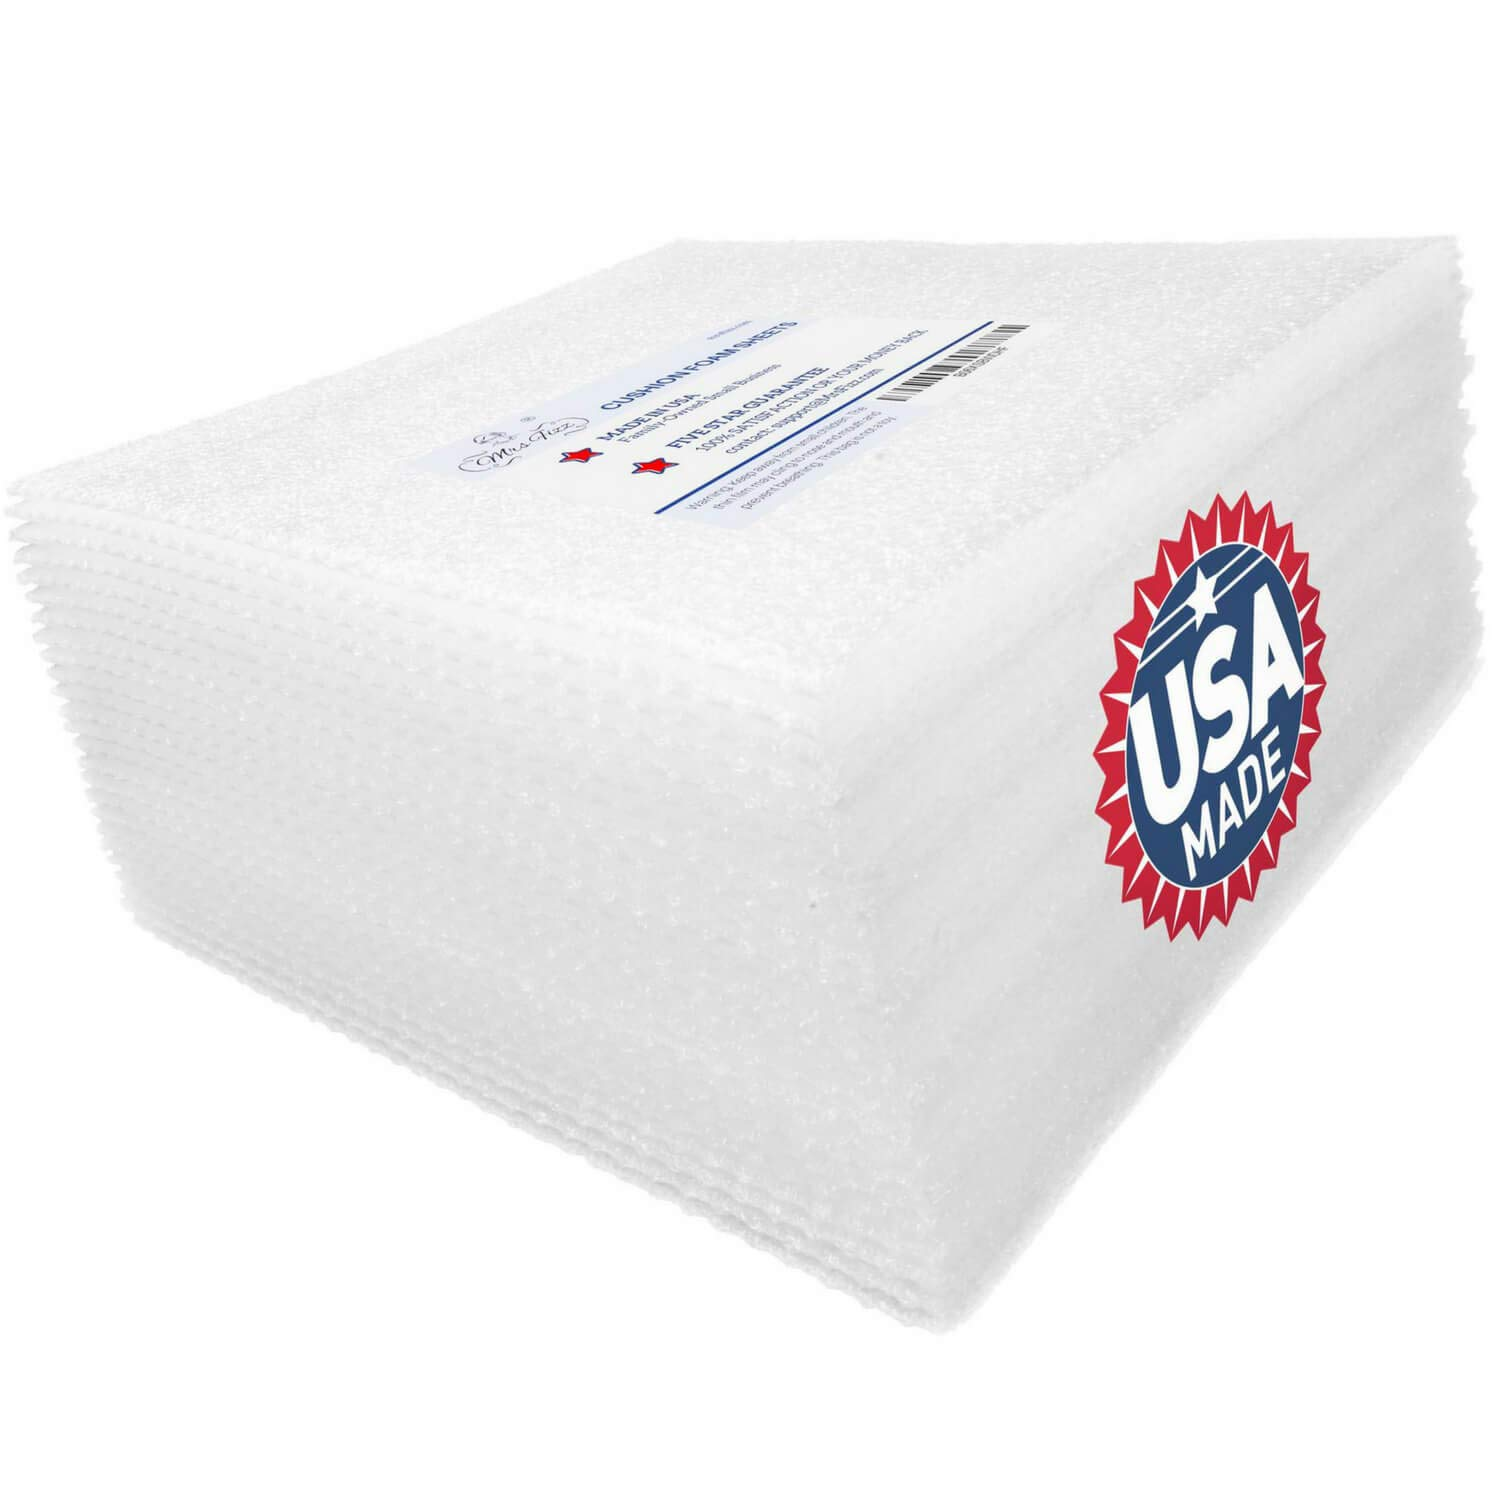 Mrs Fizz Packing Foam Sheets - Moving Supplies